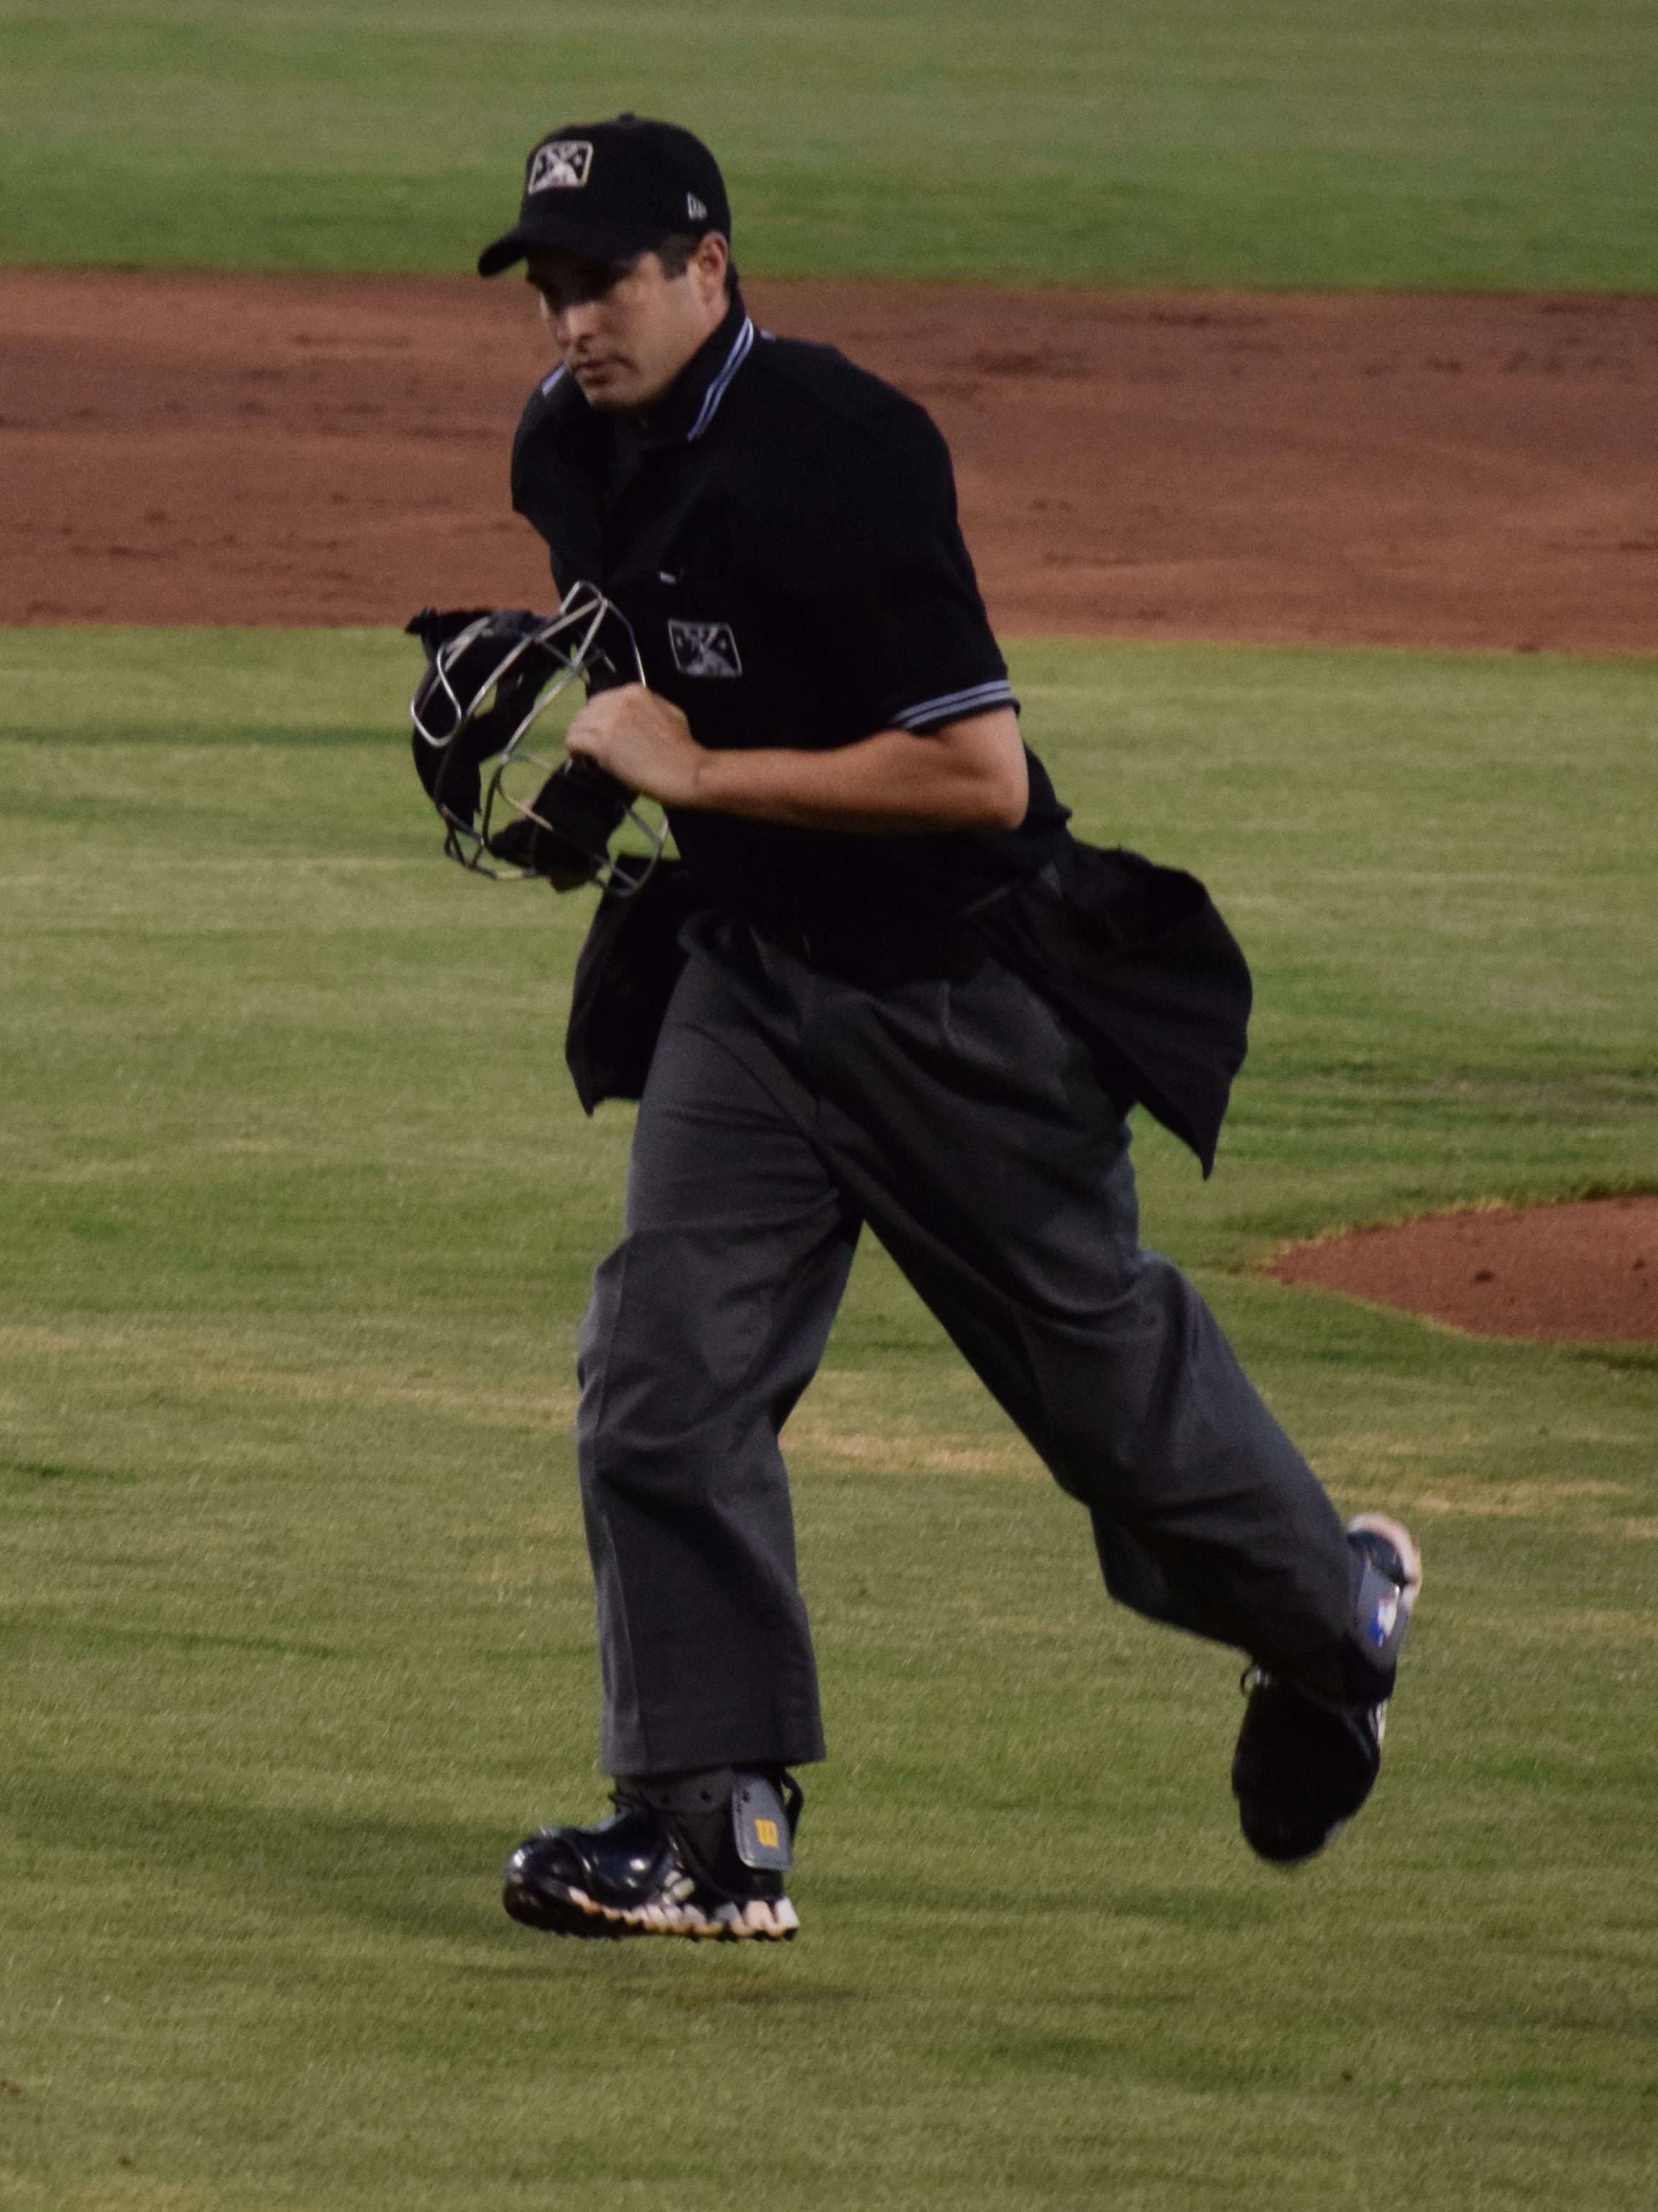 Lorenz Evans, Arizona League umpire